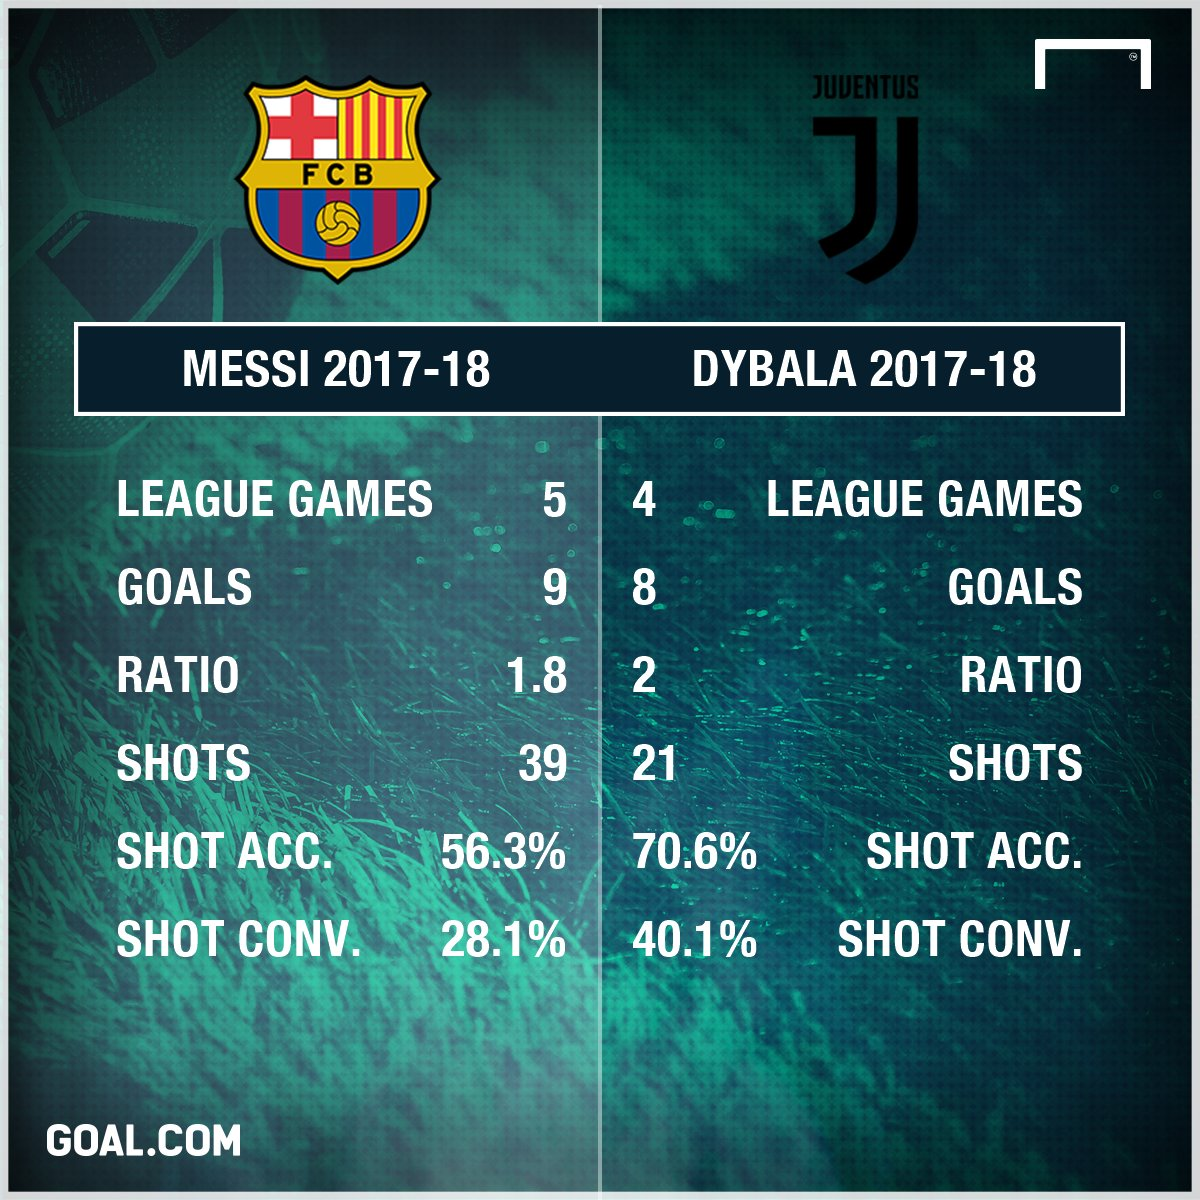 #Dybala may not be #Messi  but #Juventus ace is the next best thing:  http:// bit.ly/2hhkUcJ  &nbsp;   #SerieA #JuveFiorentina #FCBarcelona<br>http://pic.twitter.com/fq39tZG0Tm